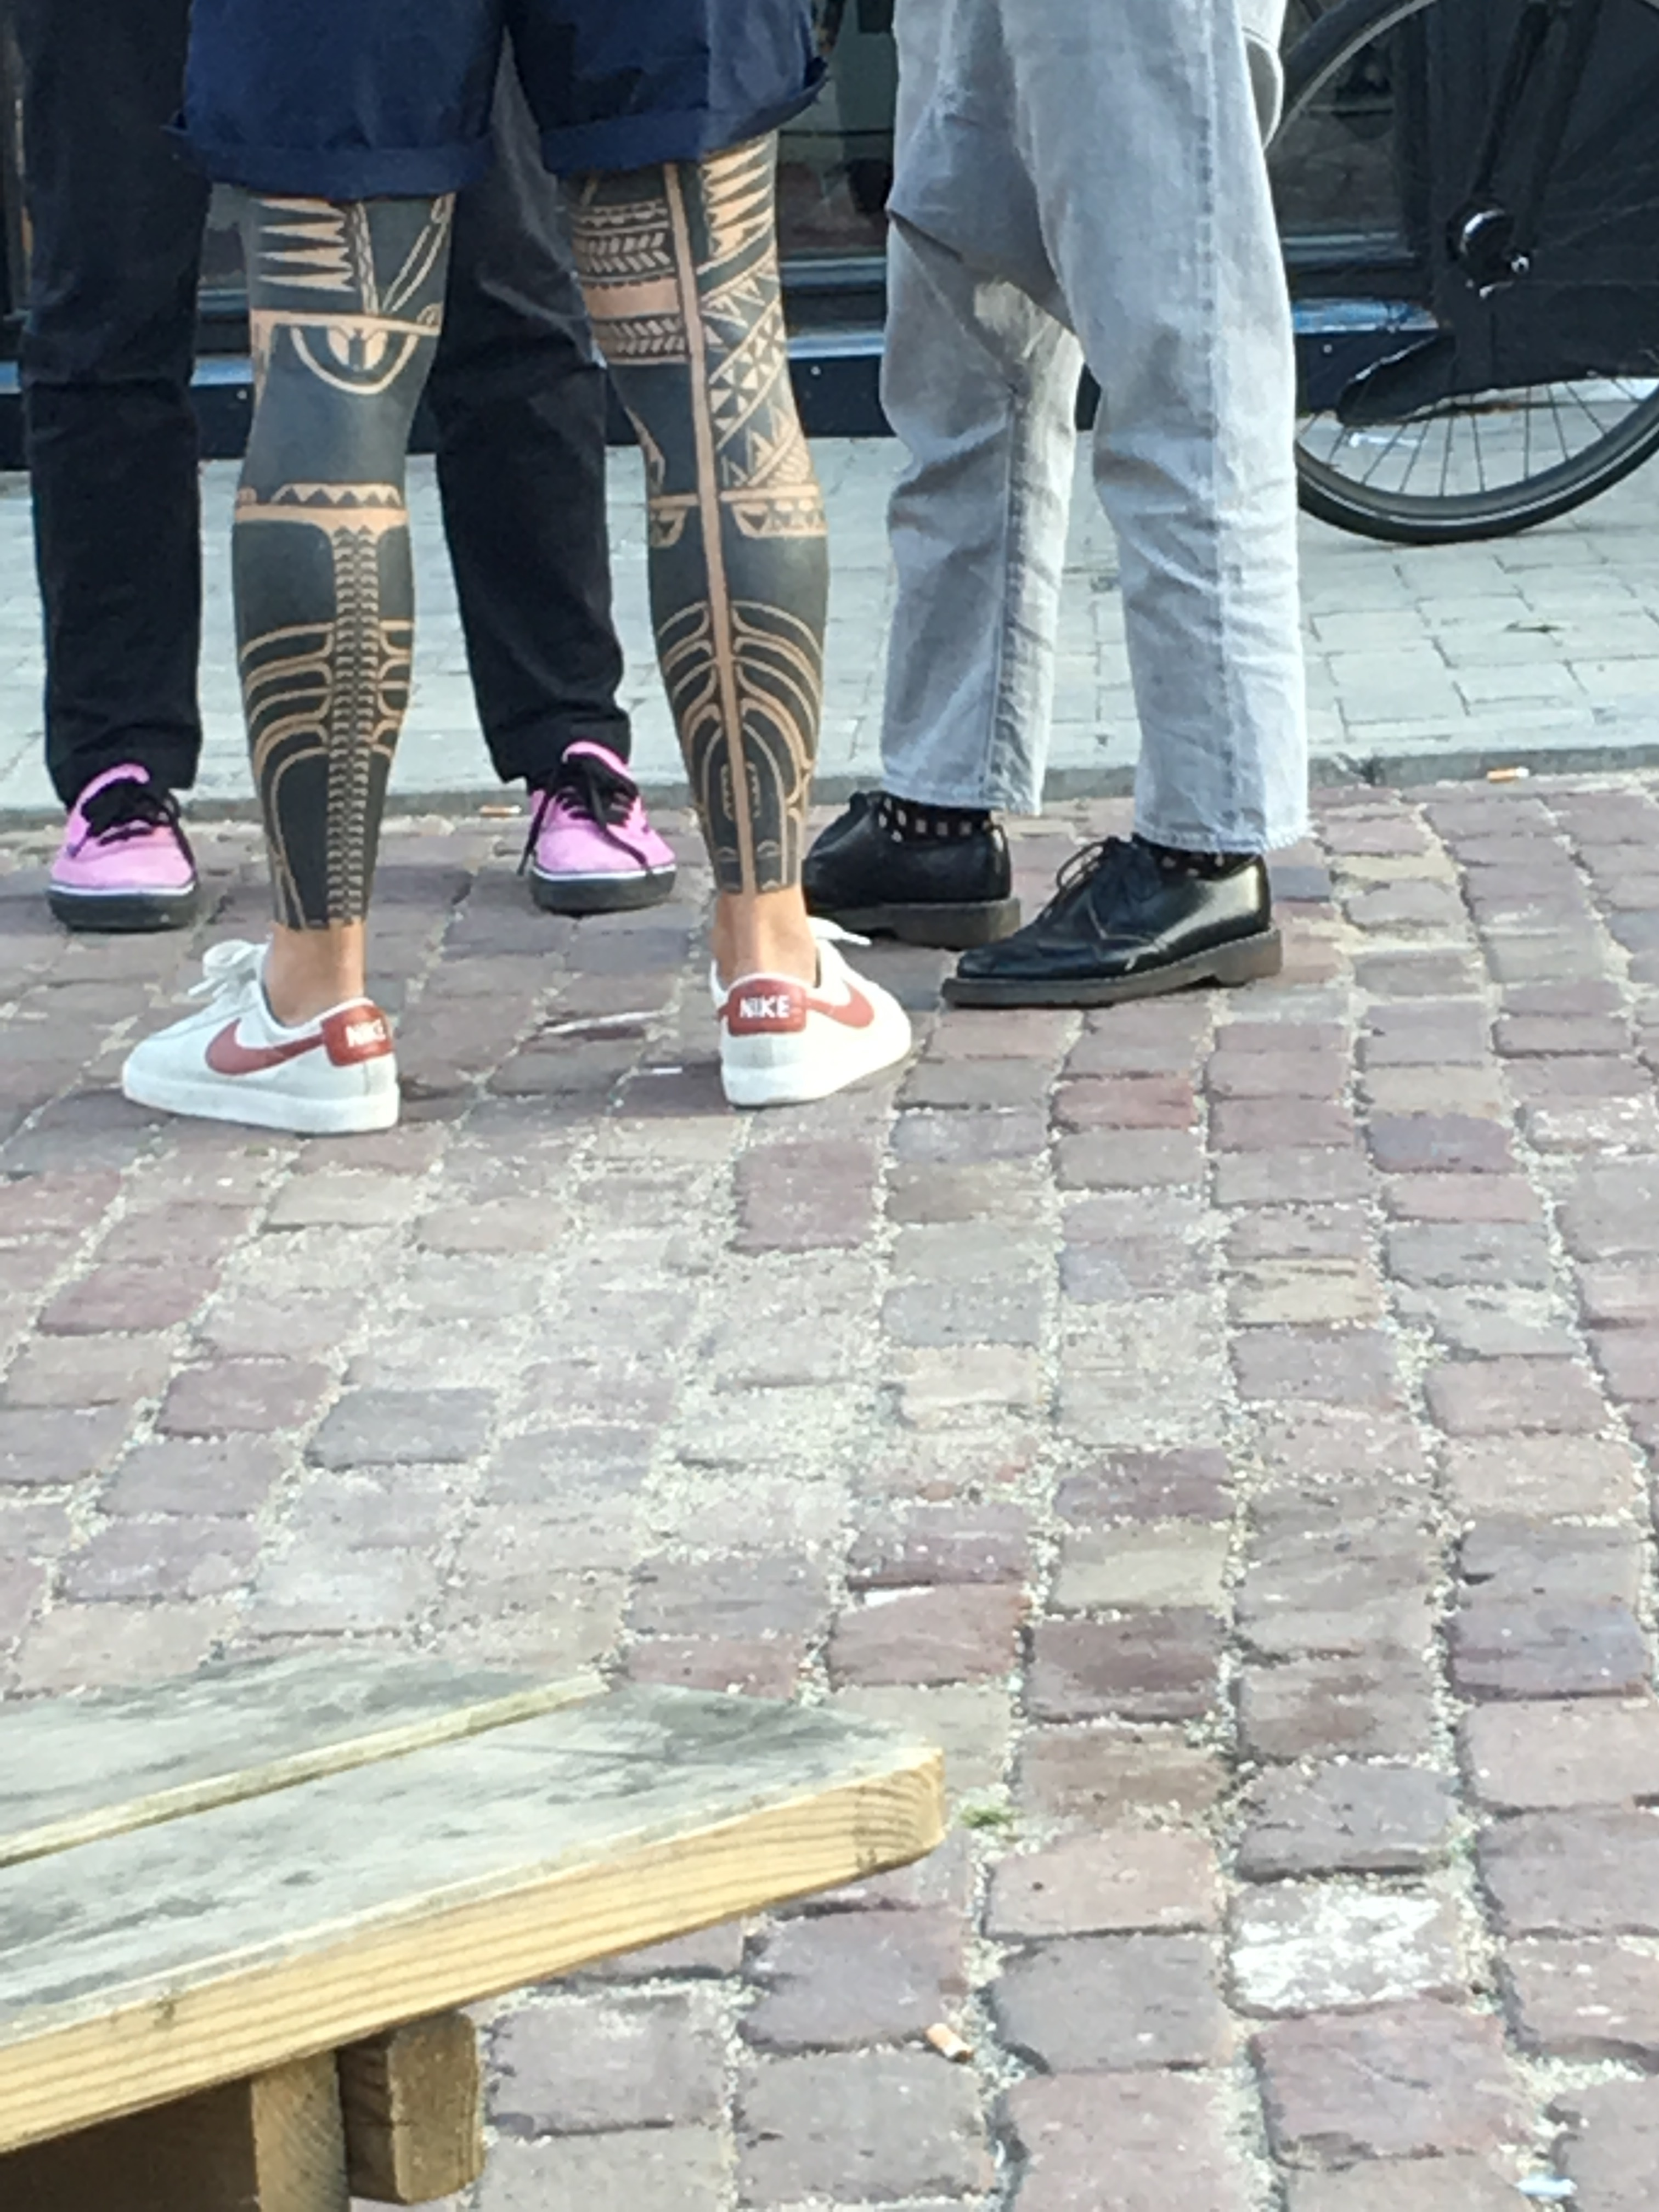 Saw this...heavy shit, heavy tattoo